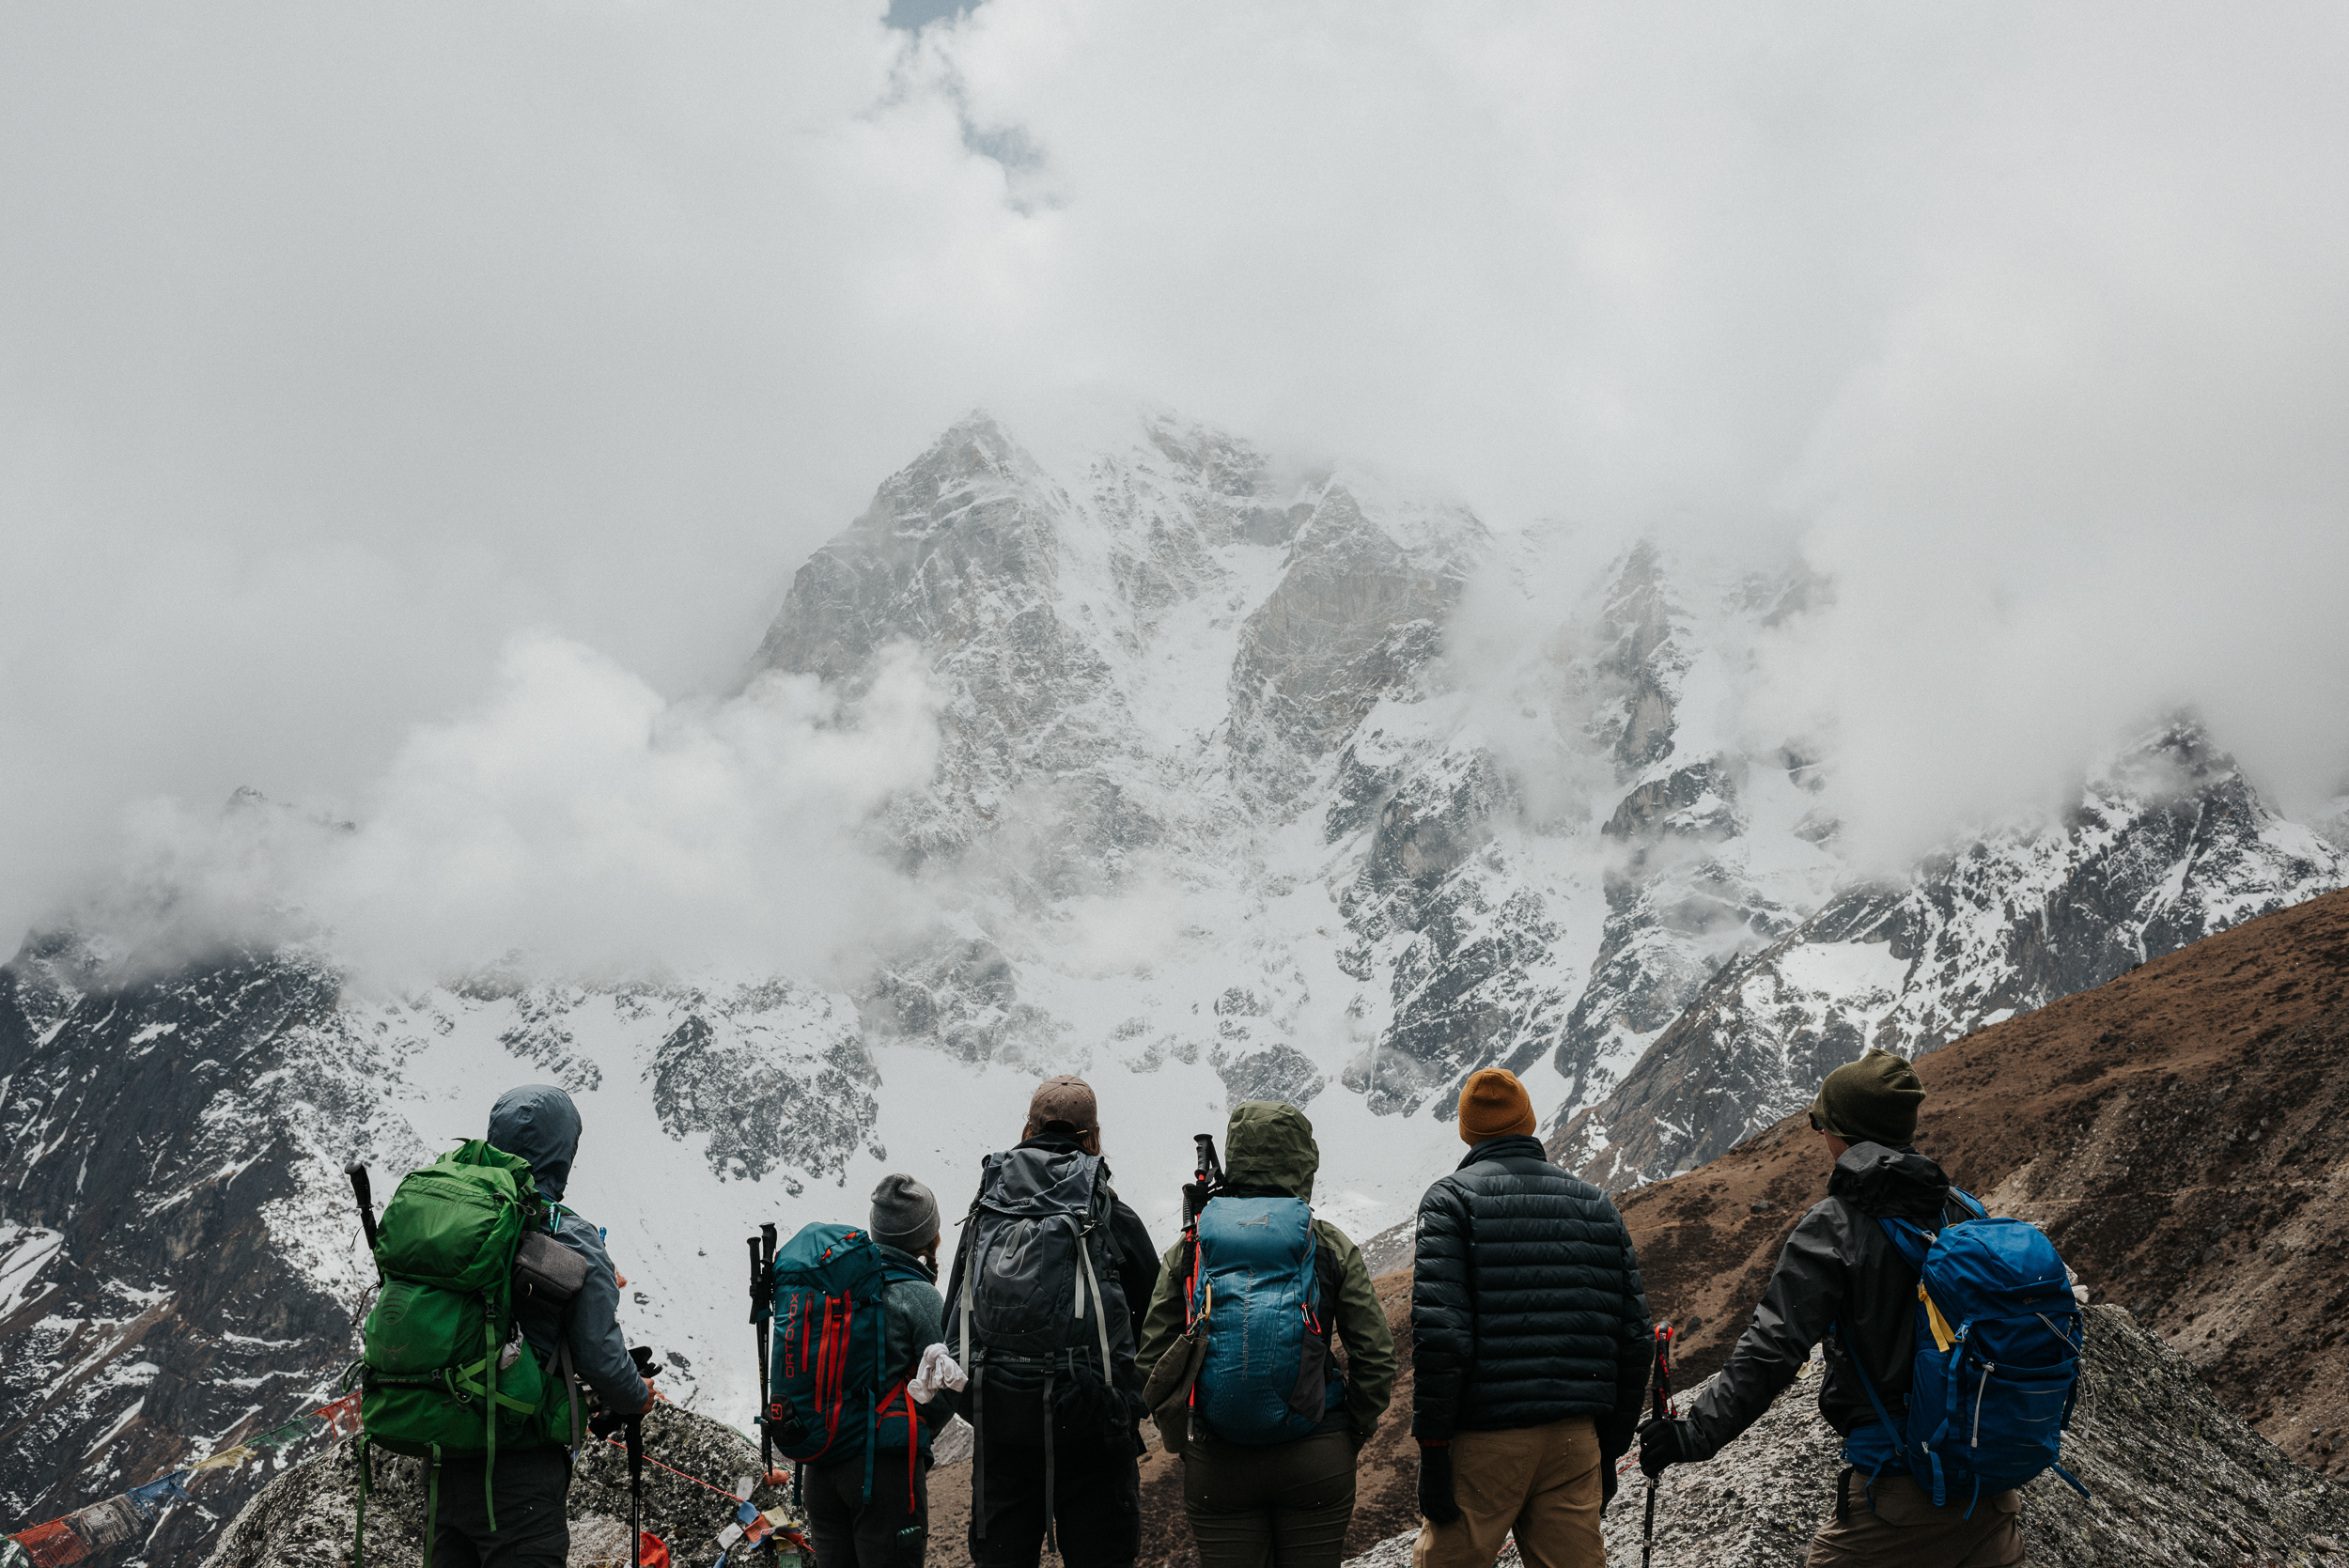 Nepal_EverestBaseCamp_2019_TaraShupe_Photography_DSC_4114.jpg